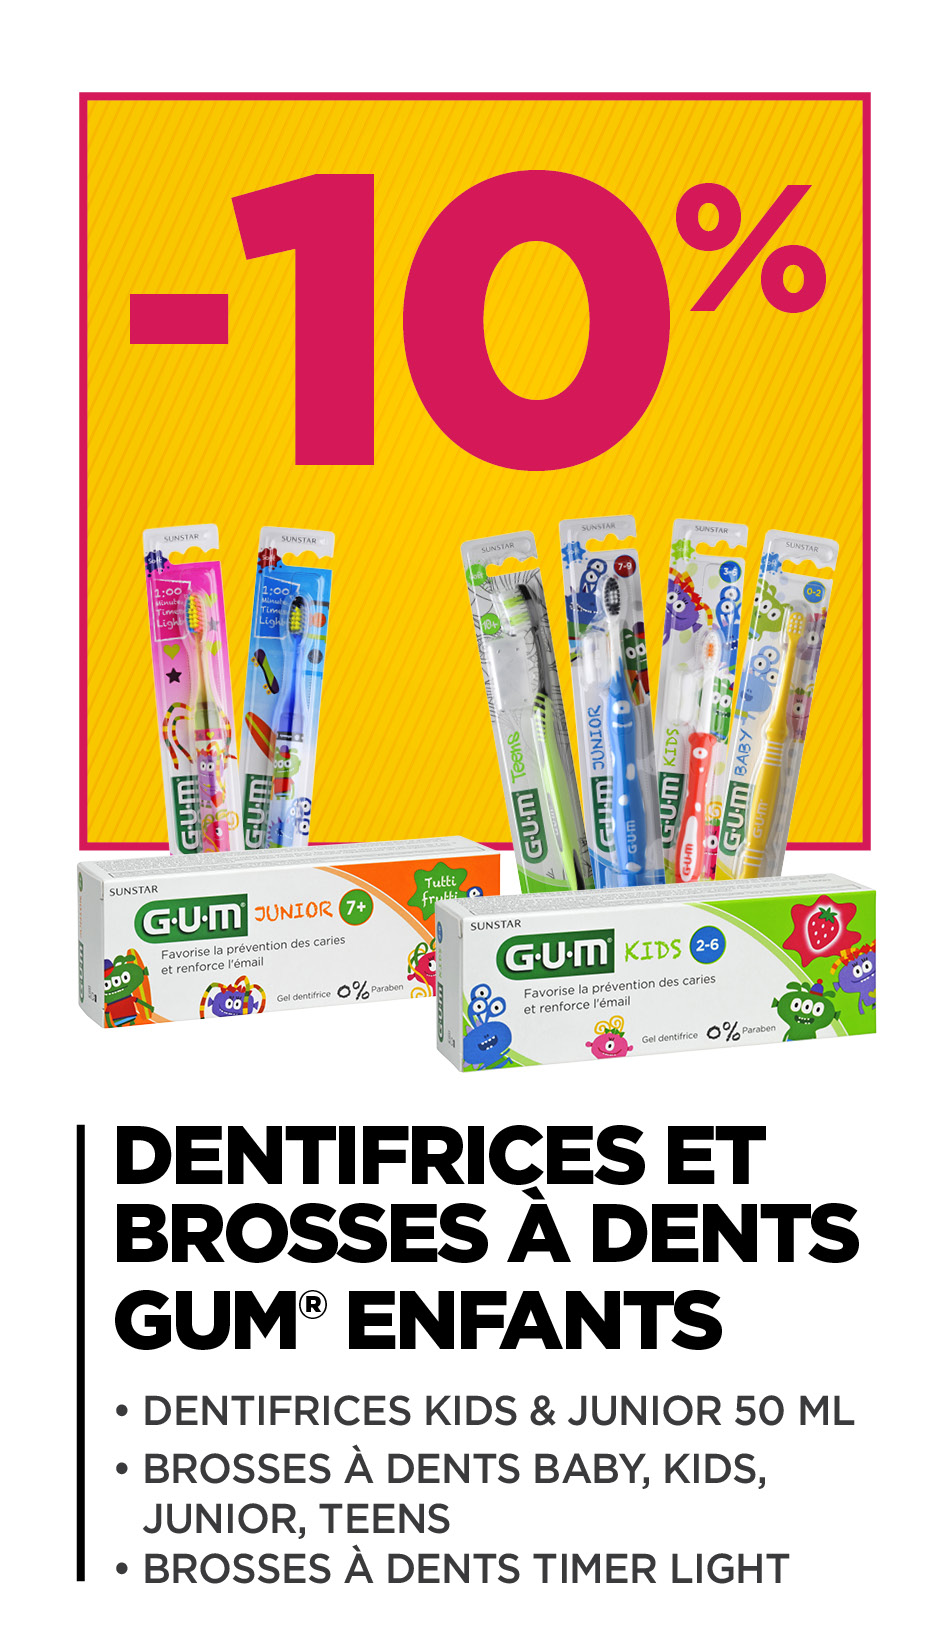 Dentifrices & Brosses à dents